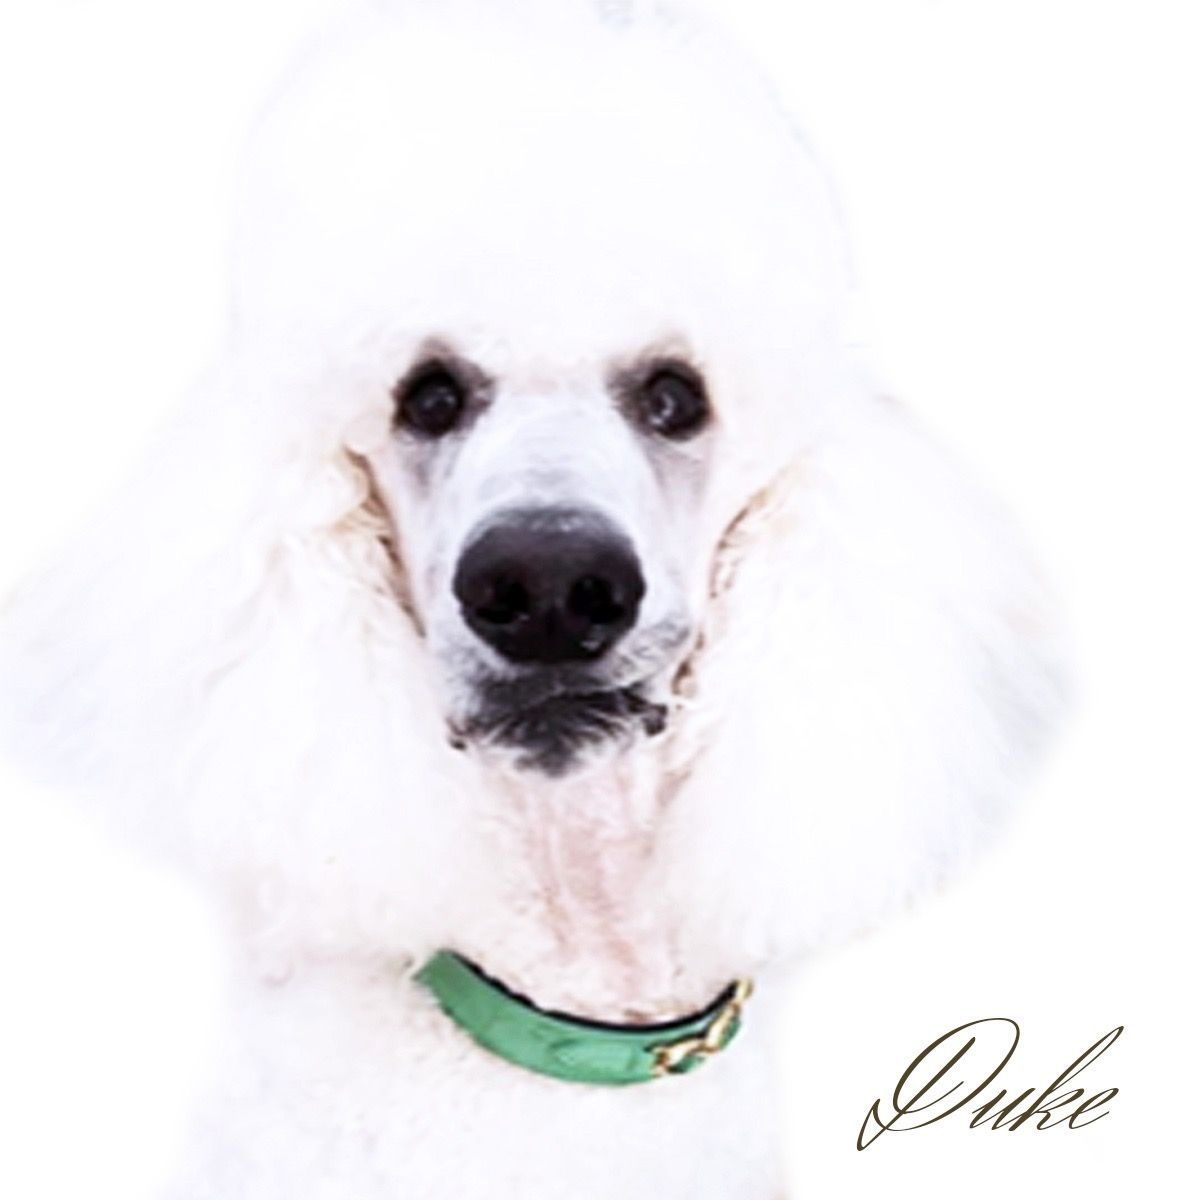 This is Duke the simply gorgeous White Standard Poodle from Sydney, Australia. He is wearing our Regency collar in kelly green, peridot & gold. Follow him @duke_thepoodle. Hartman & Rose Luxury Pet Shop. SAVE 25% on your next purchase www.hartmanandrose.com. Use code: PUMPKIN Luxury Dog Collars, Leads, Bowls & more... @hartmanandrose #hartmanandrose Exceptions apply